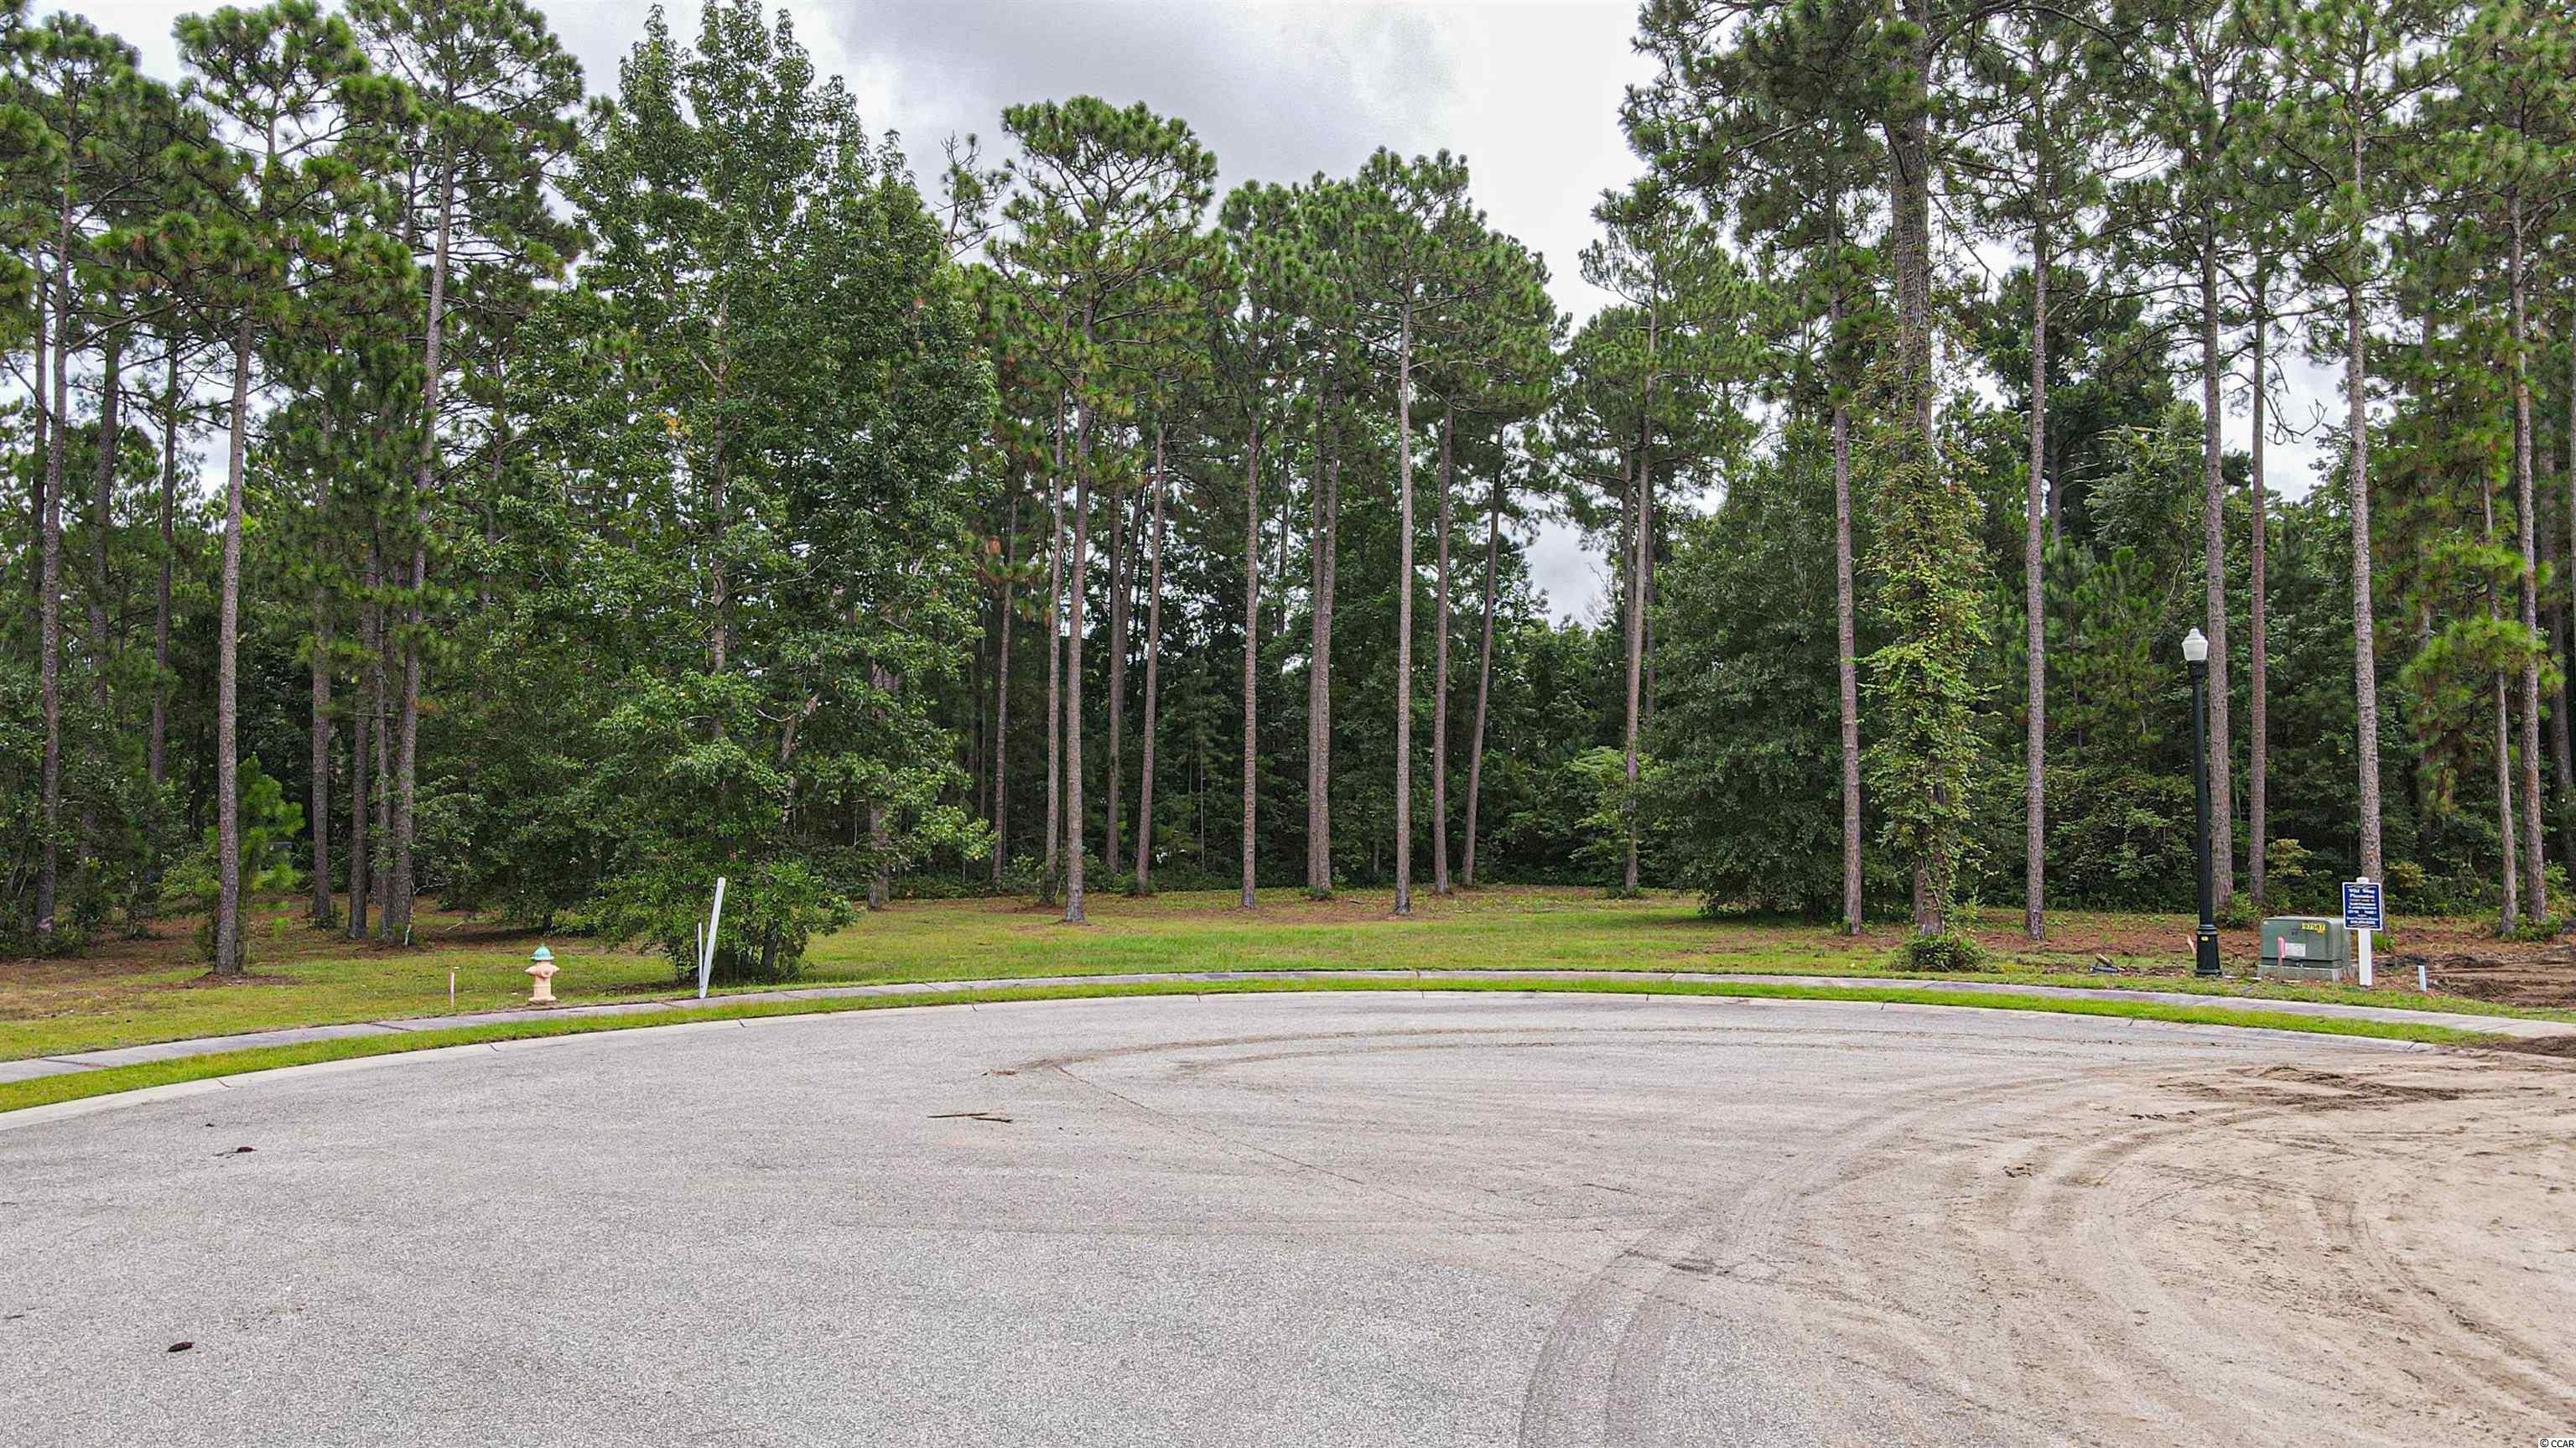 Check out this beautiful 1.24 acre lot in this highly desired neighborhood in wild wing plantation. With 27 holes of golf and 180 acres of lakes for fishing and kayaking, this community has something for everyone! This lot is at the end of a cul-de-sac and has a hidden trail behind it that leads you to a lake. There is no time frame to build, making it easy for you to take your time and choose your custom design options for the home. Please keep in mind the community has special requirements for building. The clubhouse offers a fitness center, three pools, a water slide for the kids to enjoy, driving range, and docks. Just minutes away from the beach and downtown Conway. Don't miss your opportunity to have the biggest lot available in the community to build your dream home!